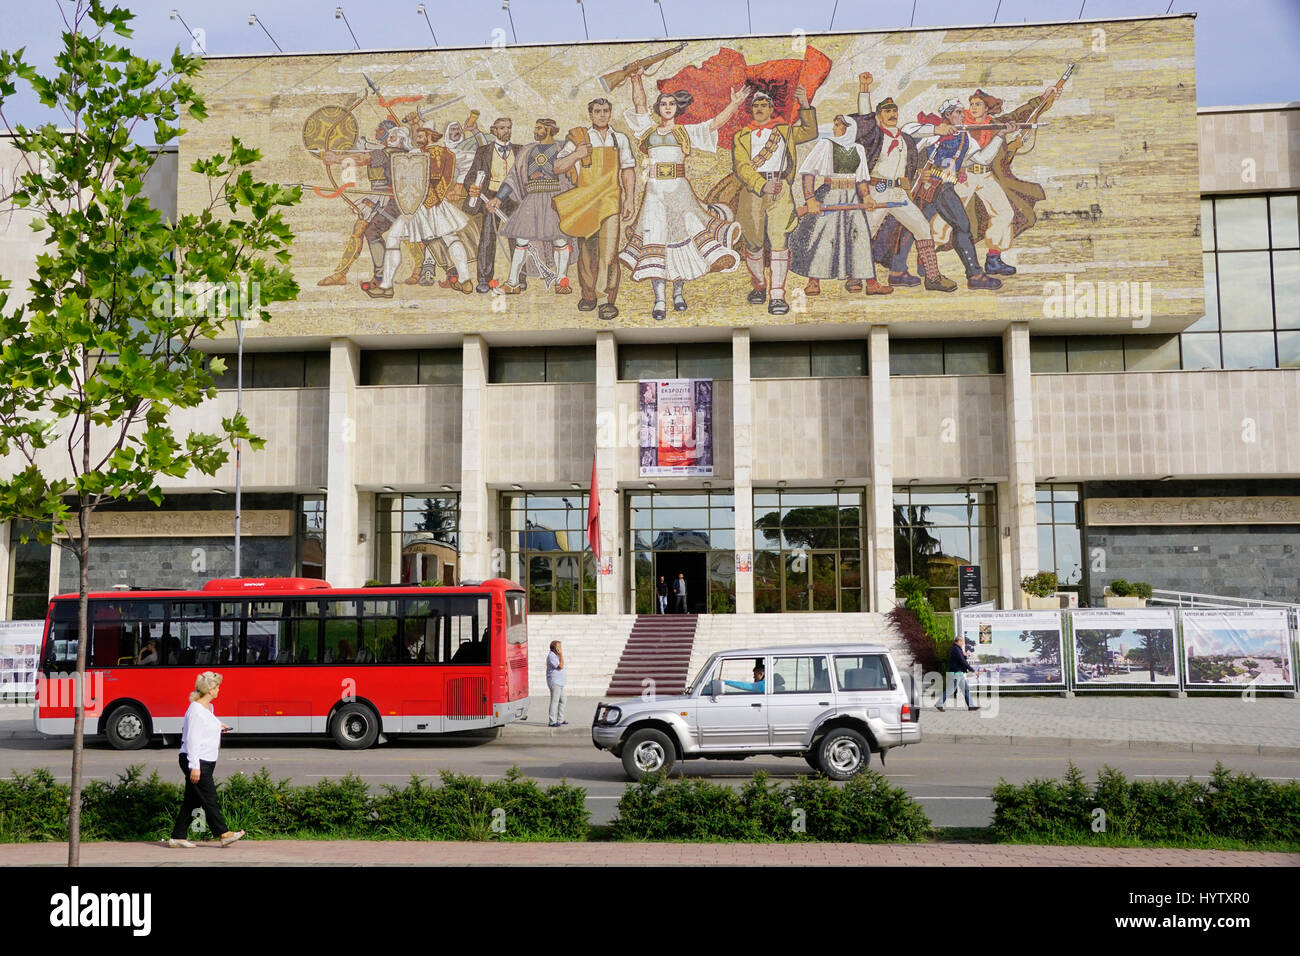 National History Museum in Tirana, Albania. - Stock Image